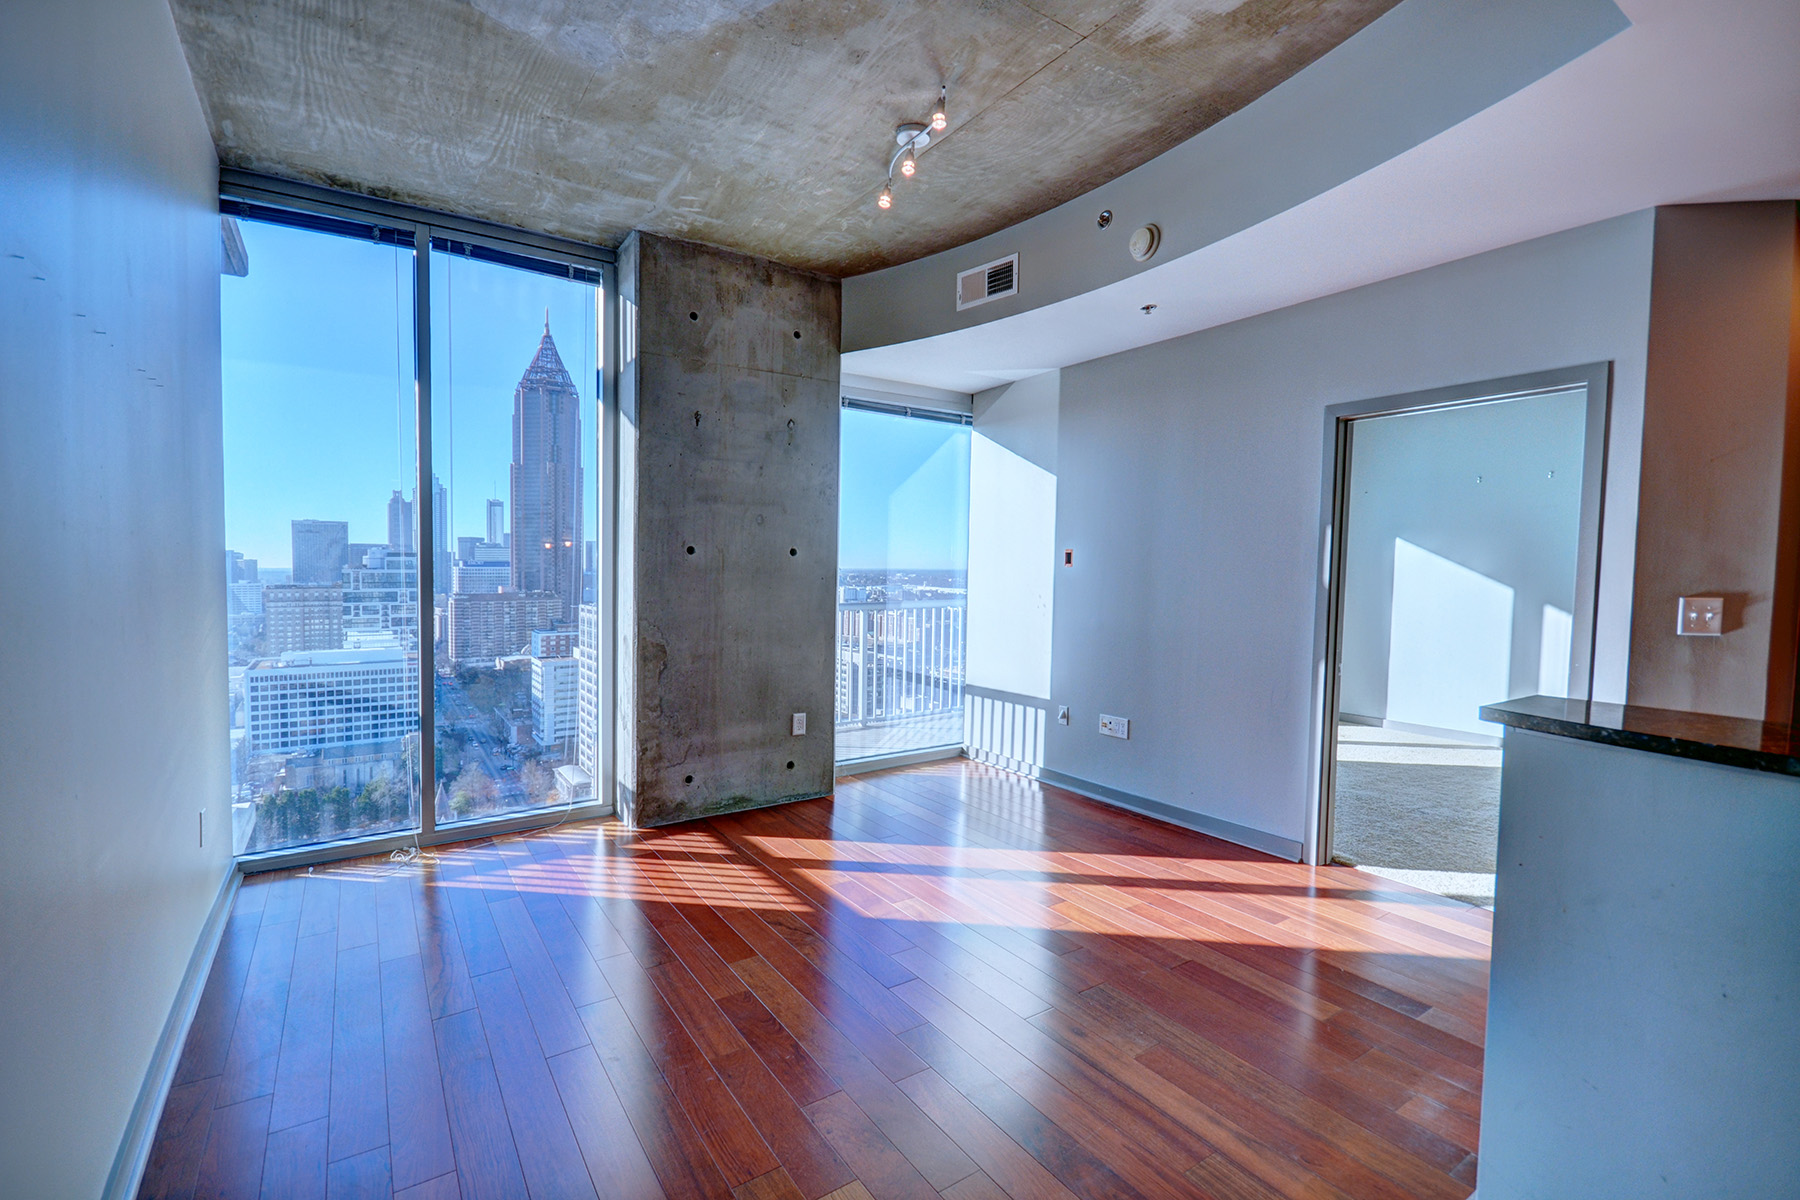 Condominium for Sale at Two Bedroom Condo in Viewpoint with Beautiful Skyline Views 855 Peachtree Street NE No. 2707 Atlanta, Georgia 30308 United States